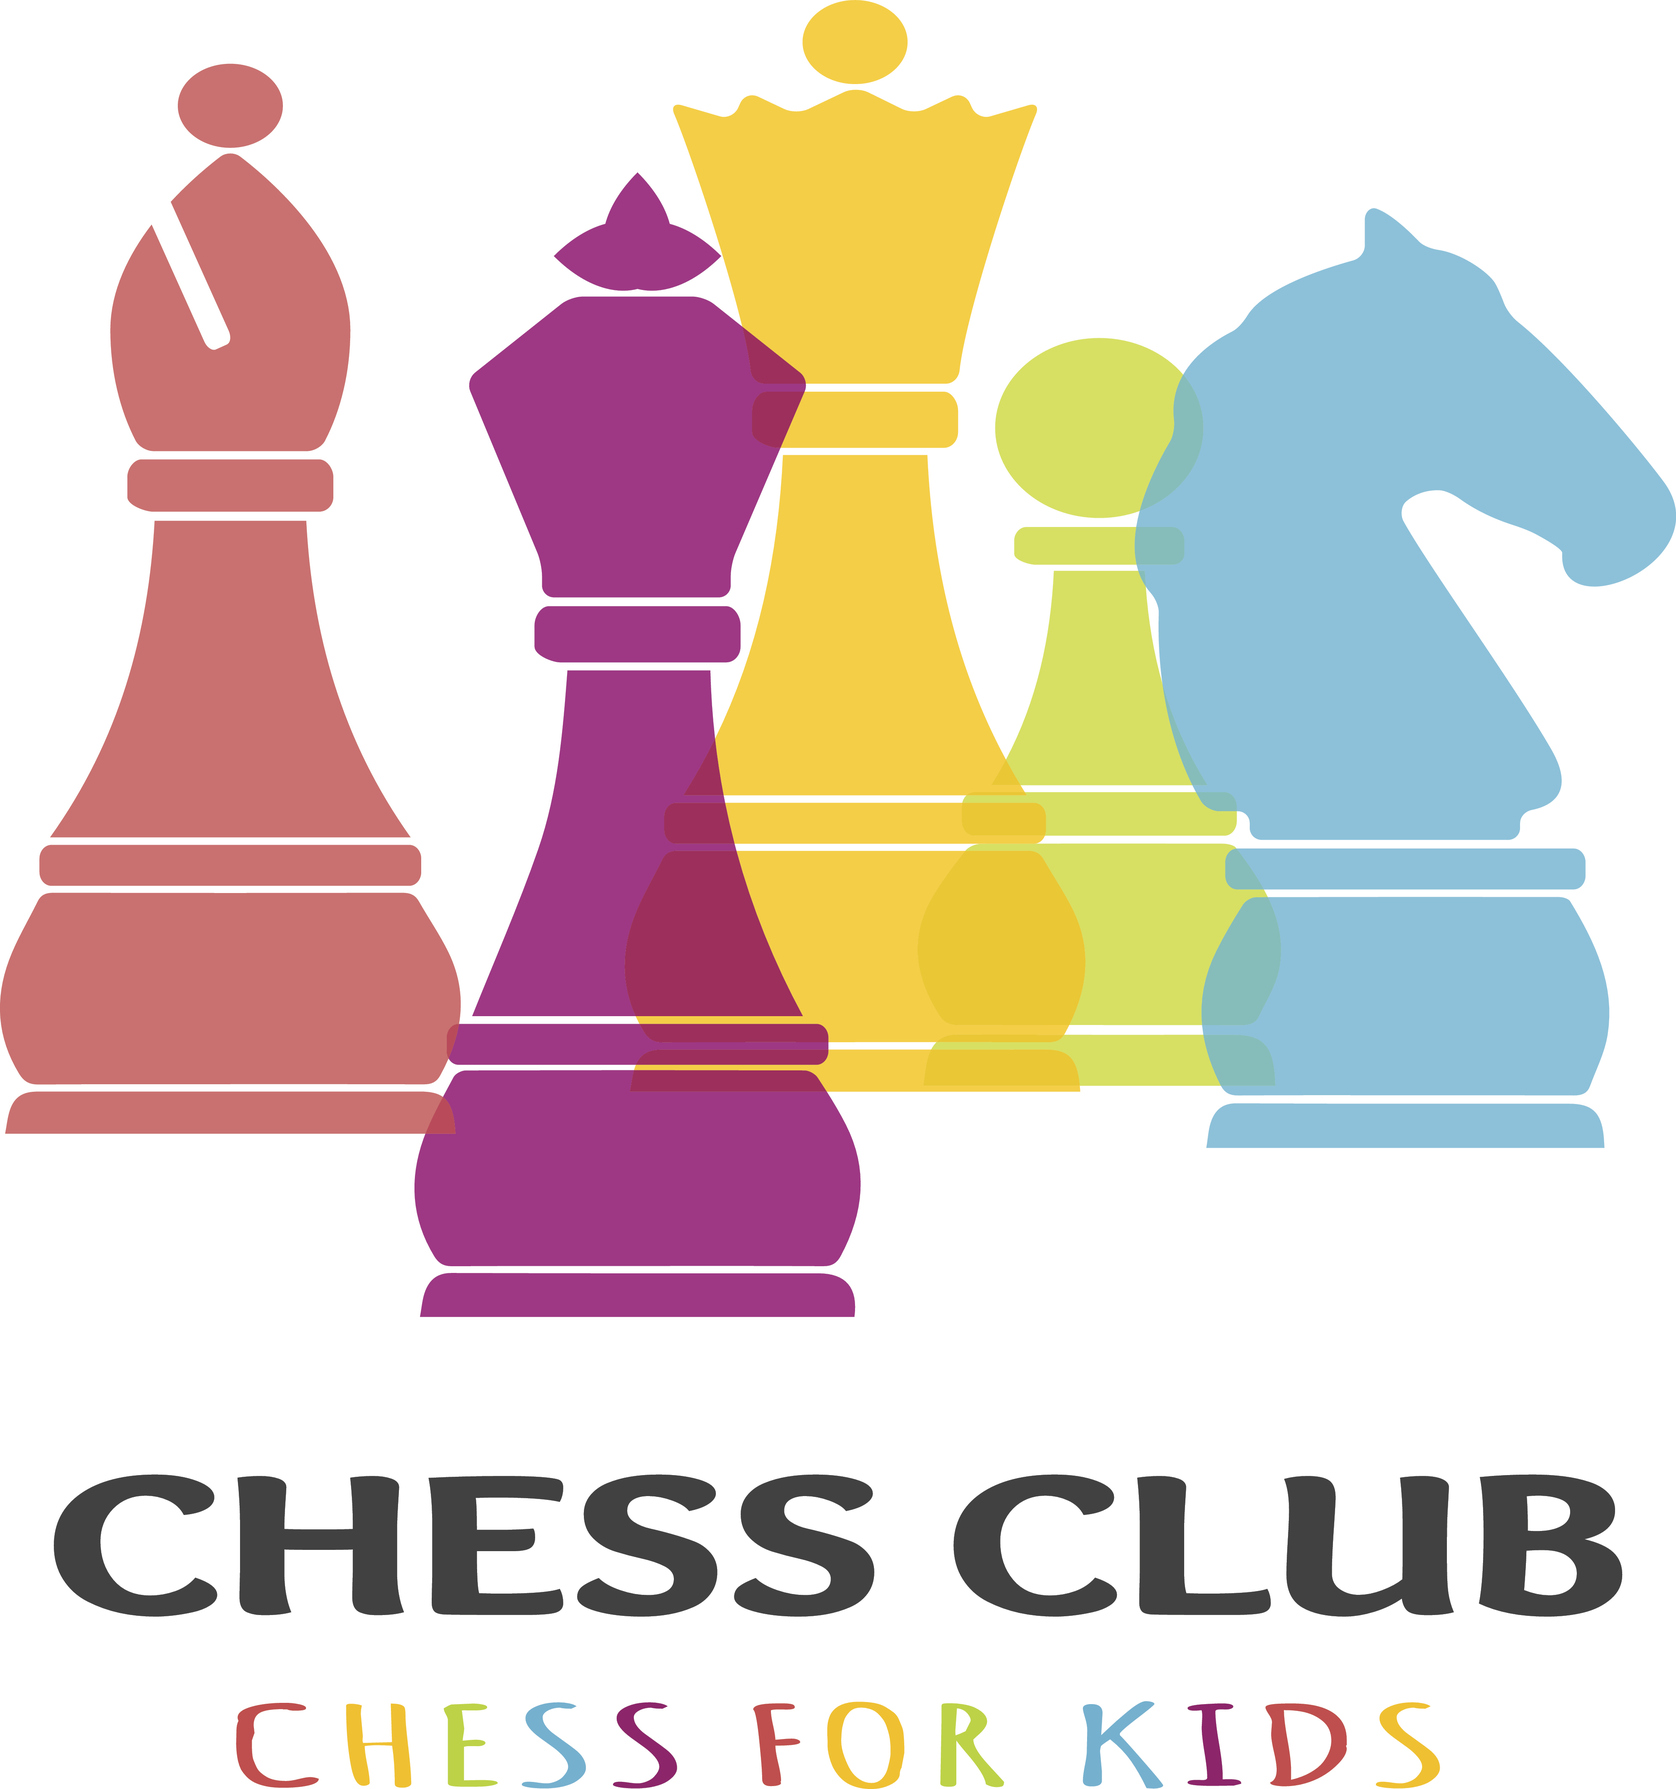 Chess clipart kid chess. Club in montclair for